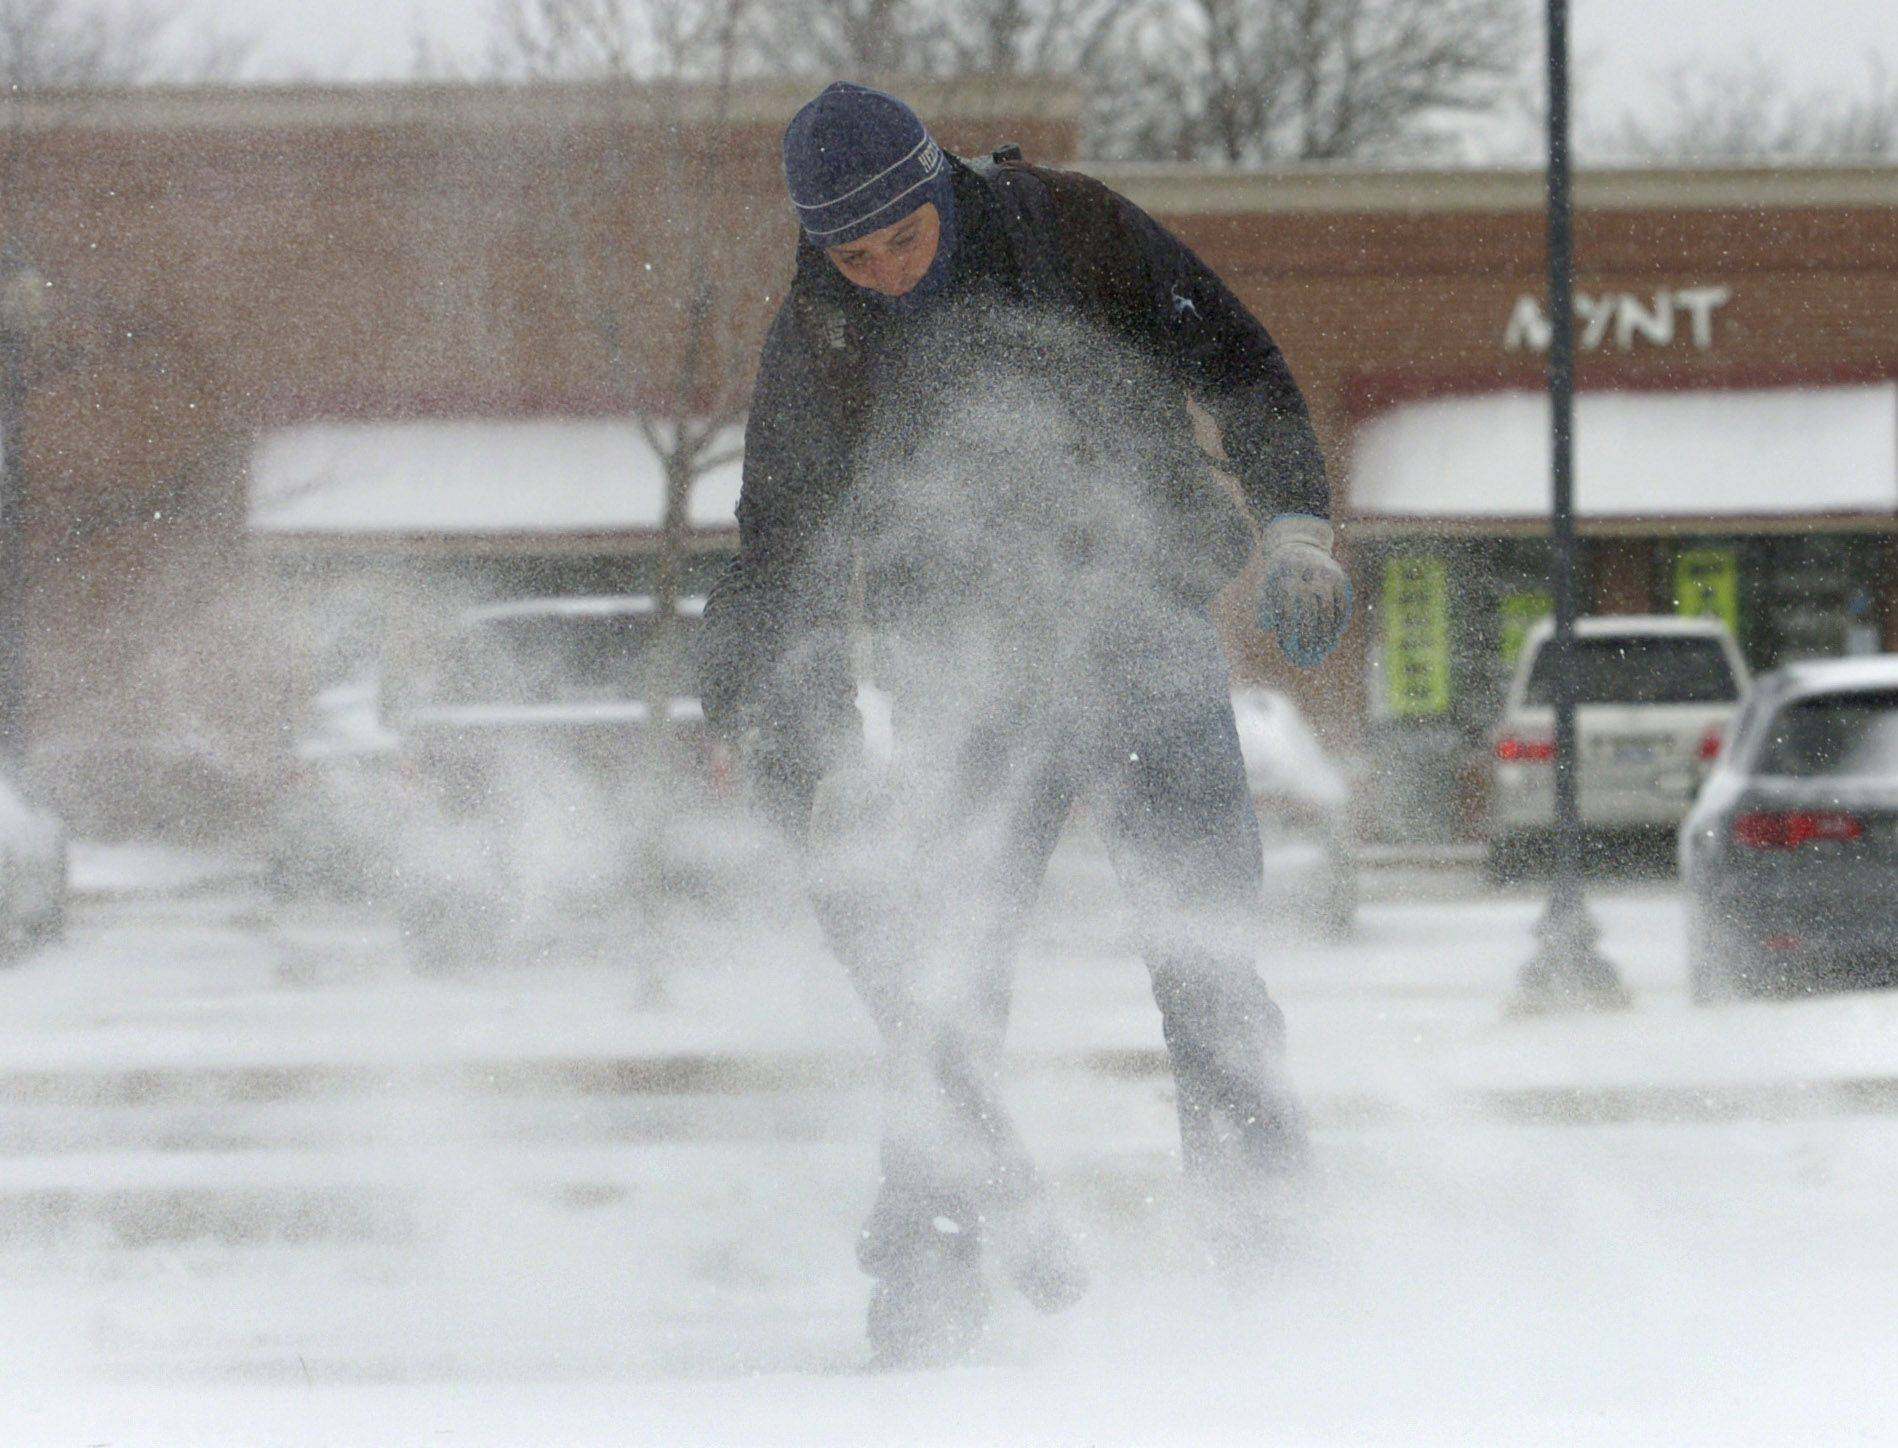 Damian Lopez of Streamwood finally gets the snowfall he's been waiting for all season for his landscaping business. He uses a leaf blower to clear a path in front of Oberweis in the Town Square in Schaumburg.